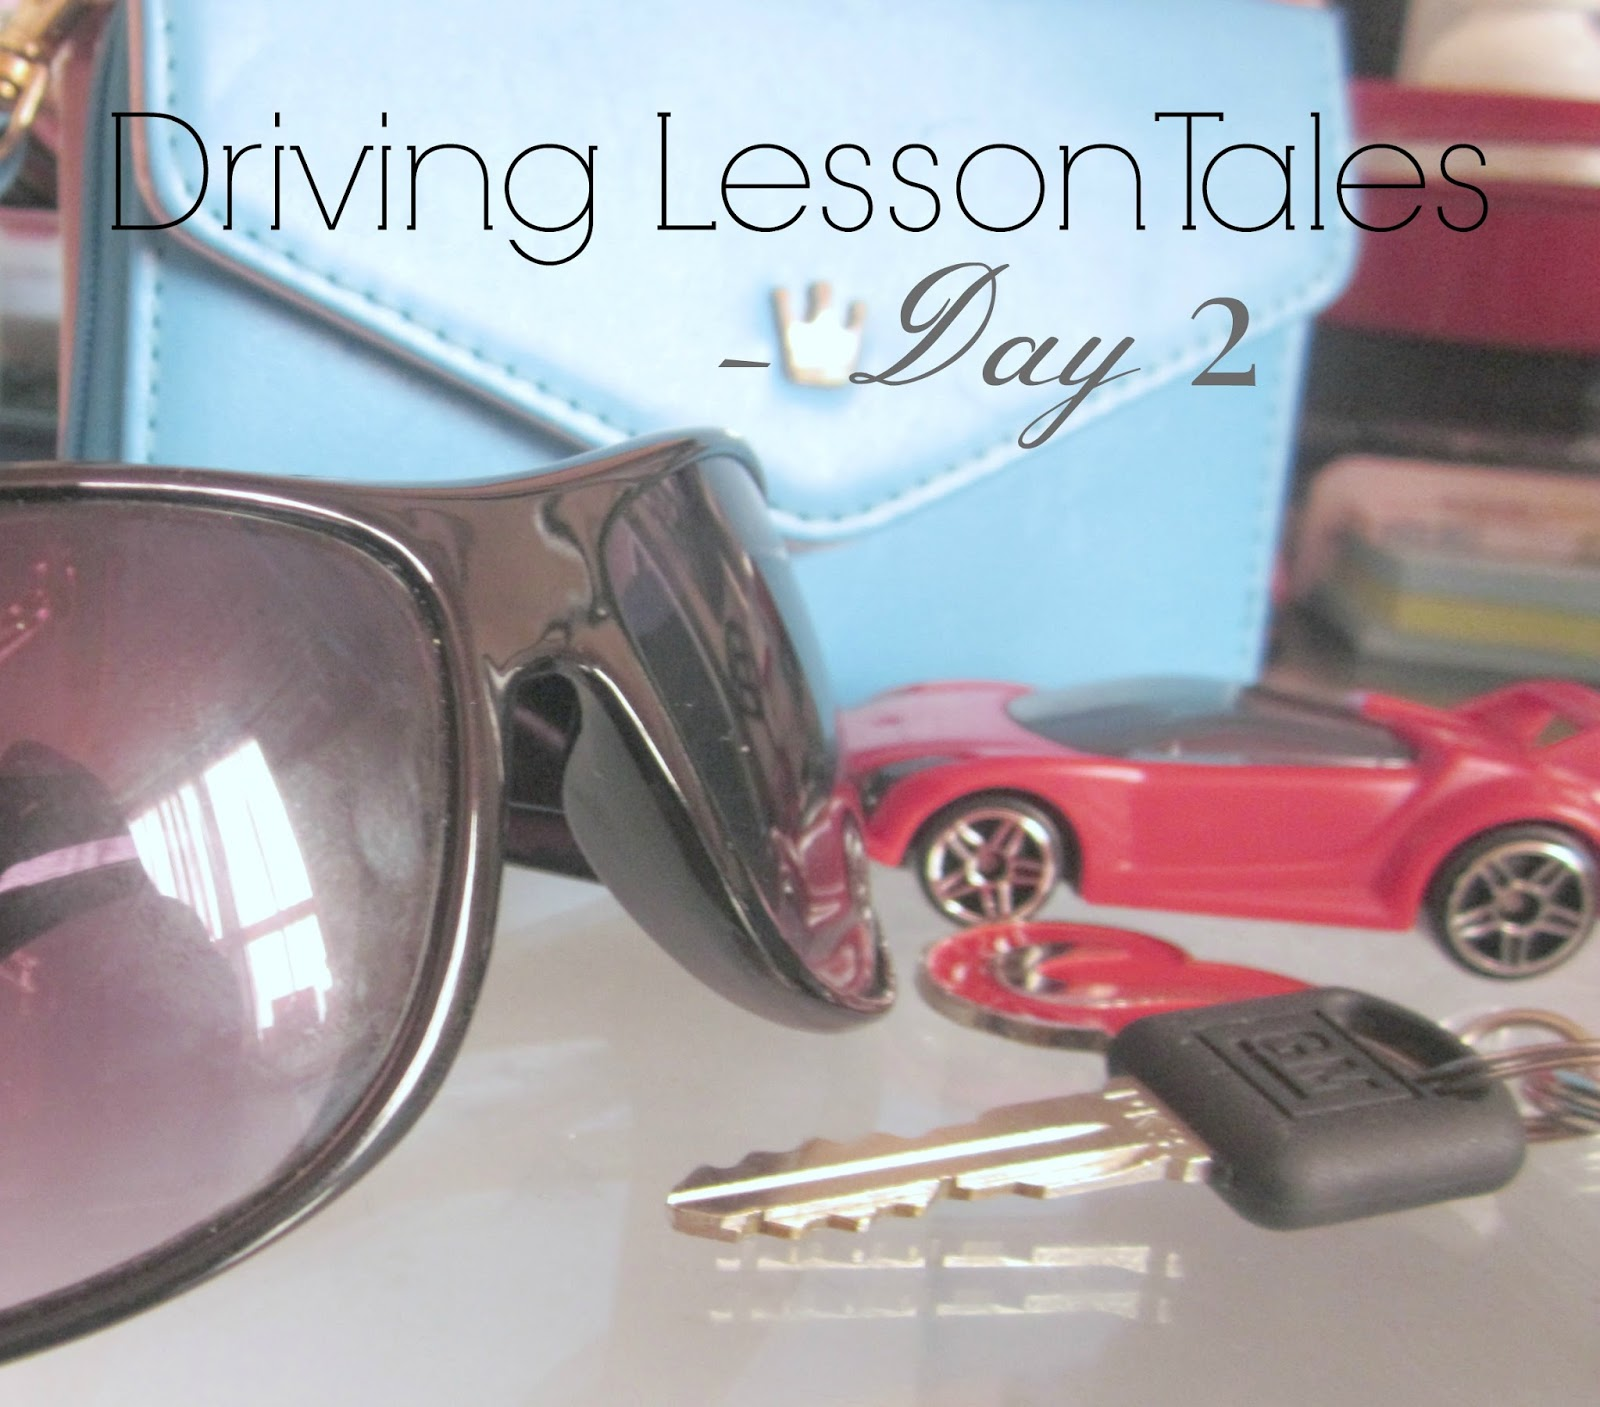 driving lesson tales